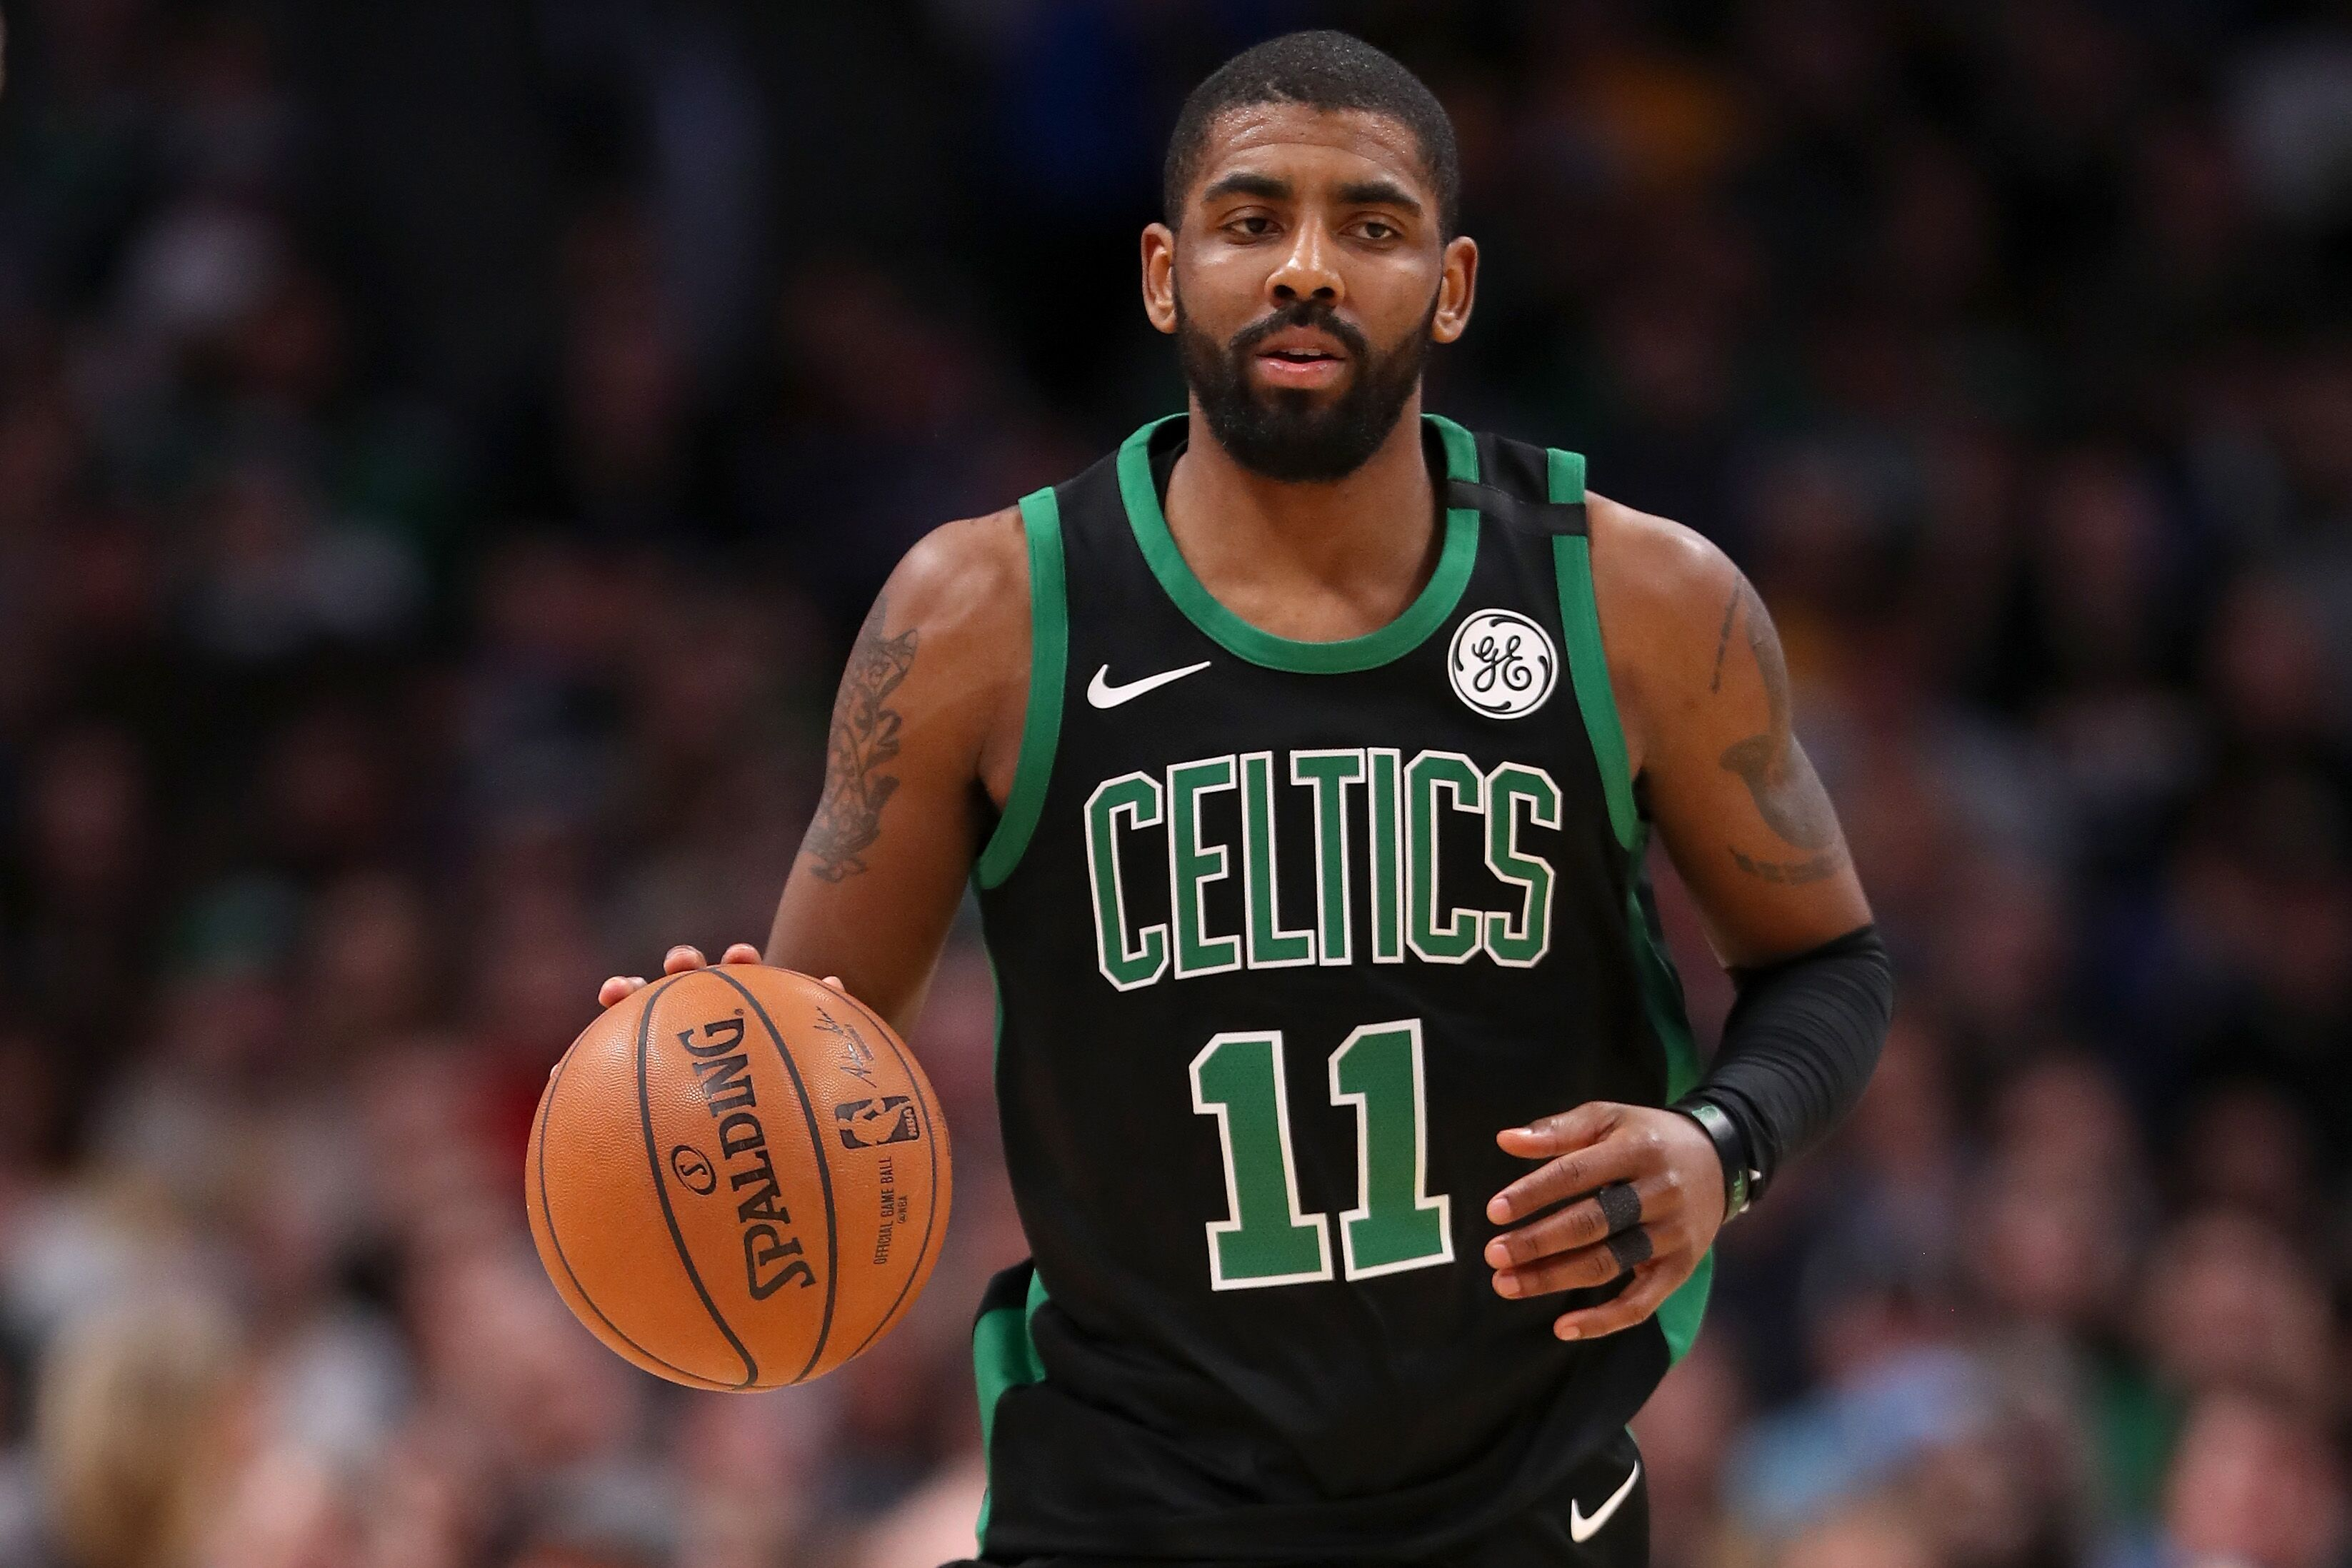 Boston Celtics: Ranking the 5 greatest guards in team history